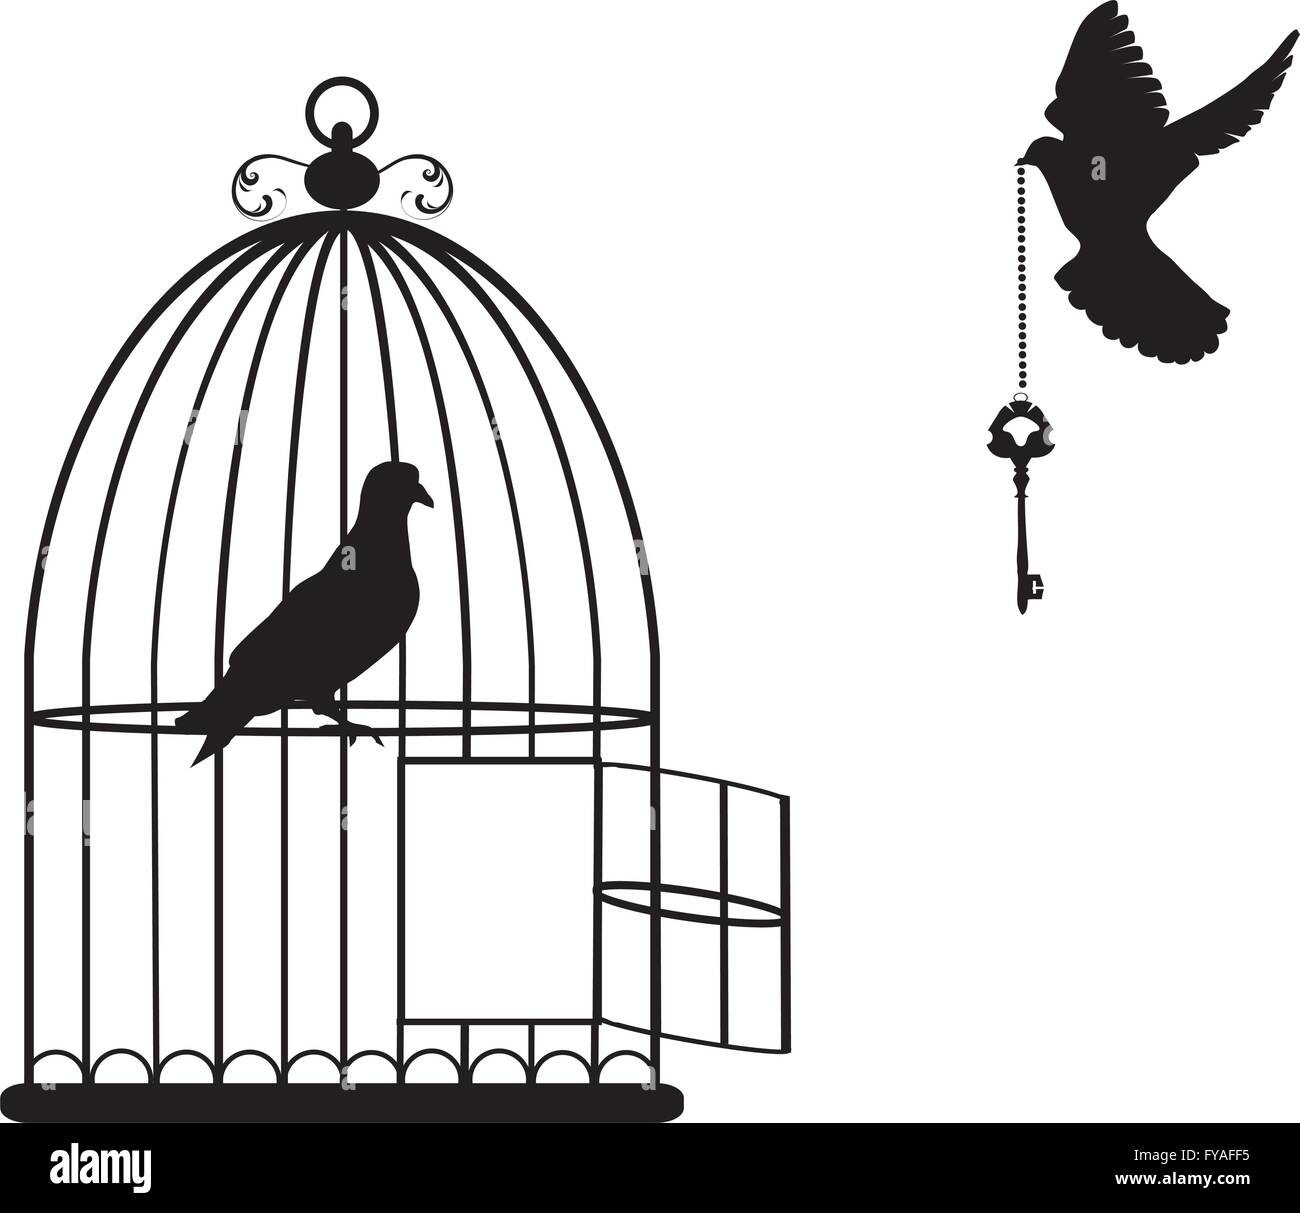 bird cage open stock vector images alamy